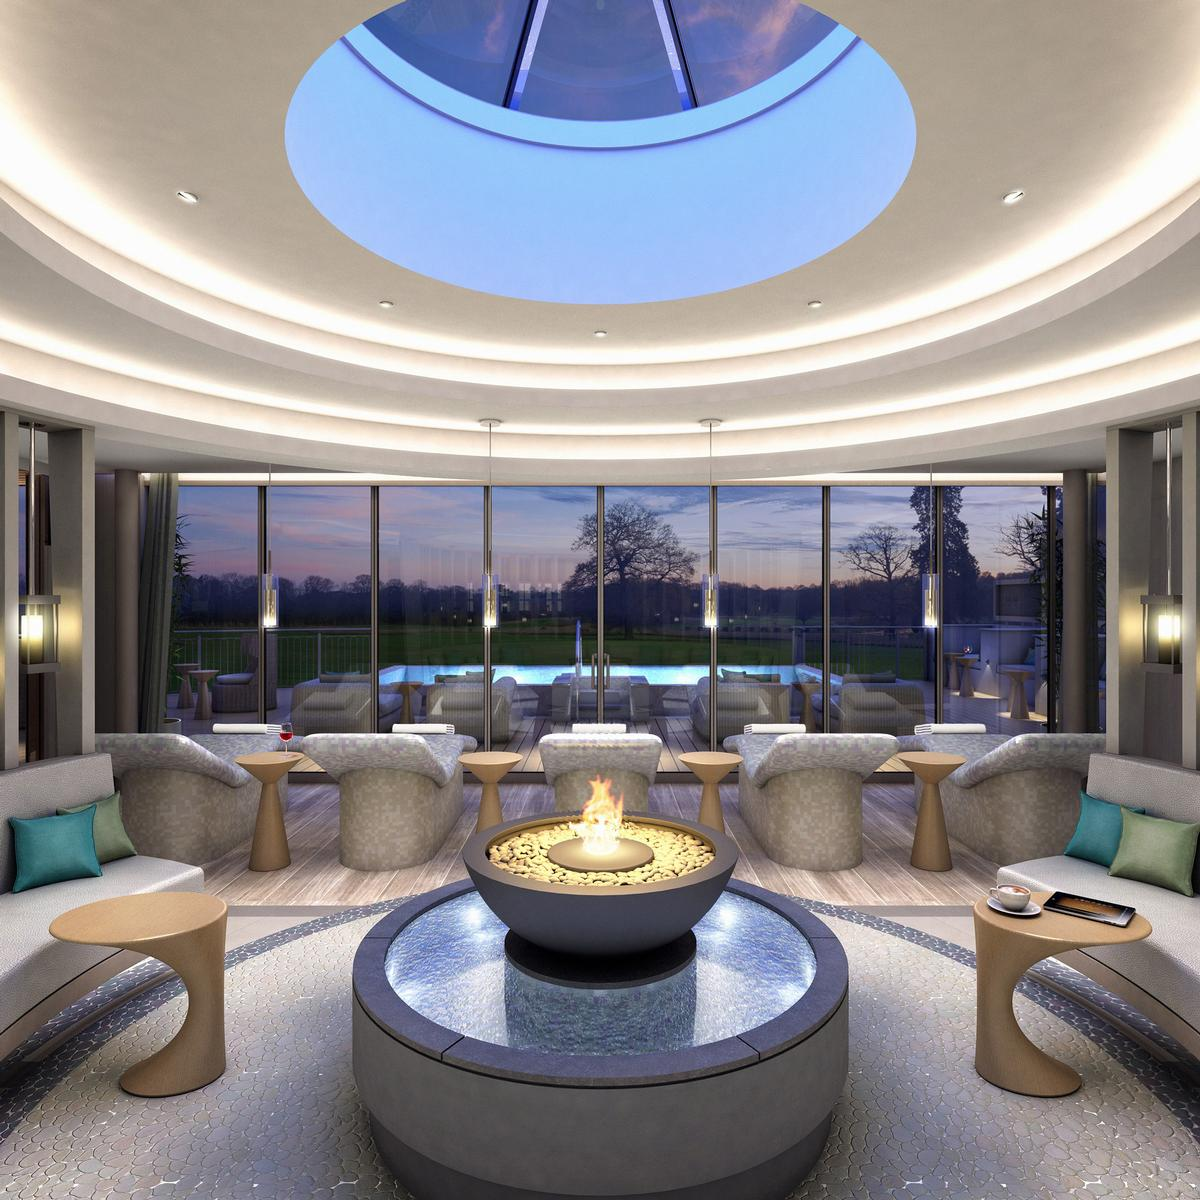 Artist's impressions of the new spa garden at Rockliffe Hall / Rockliffe Hall